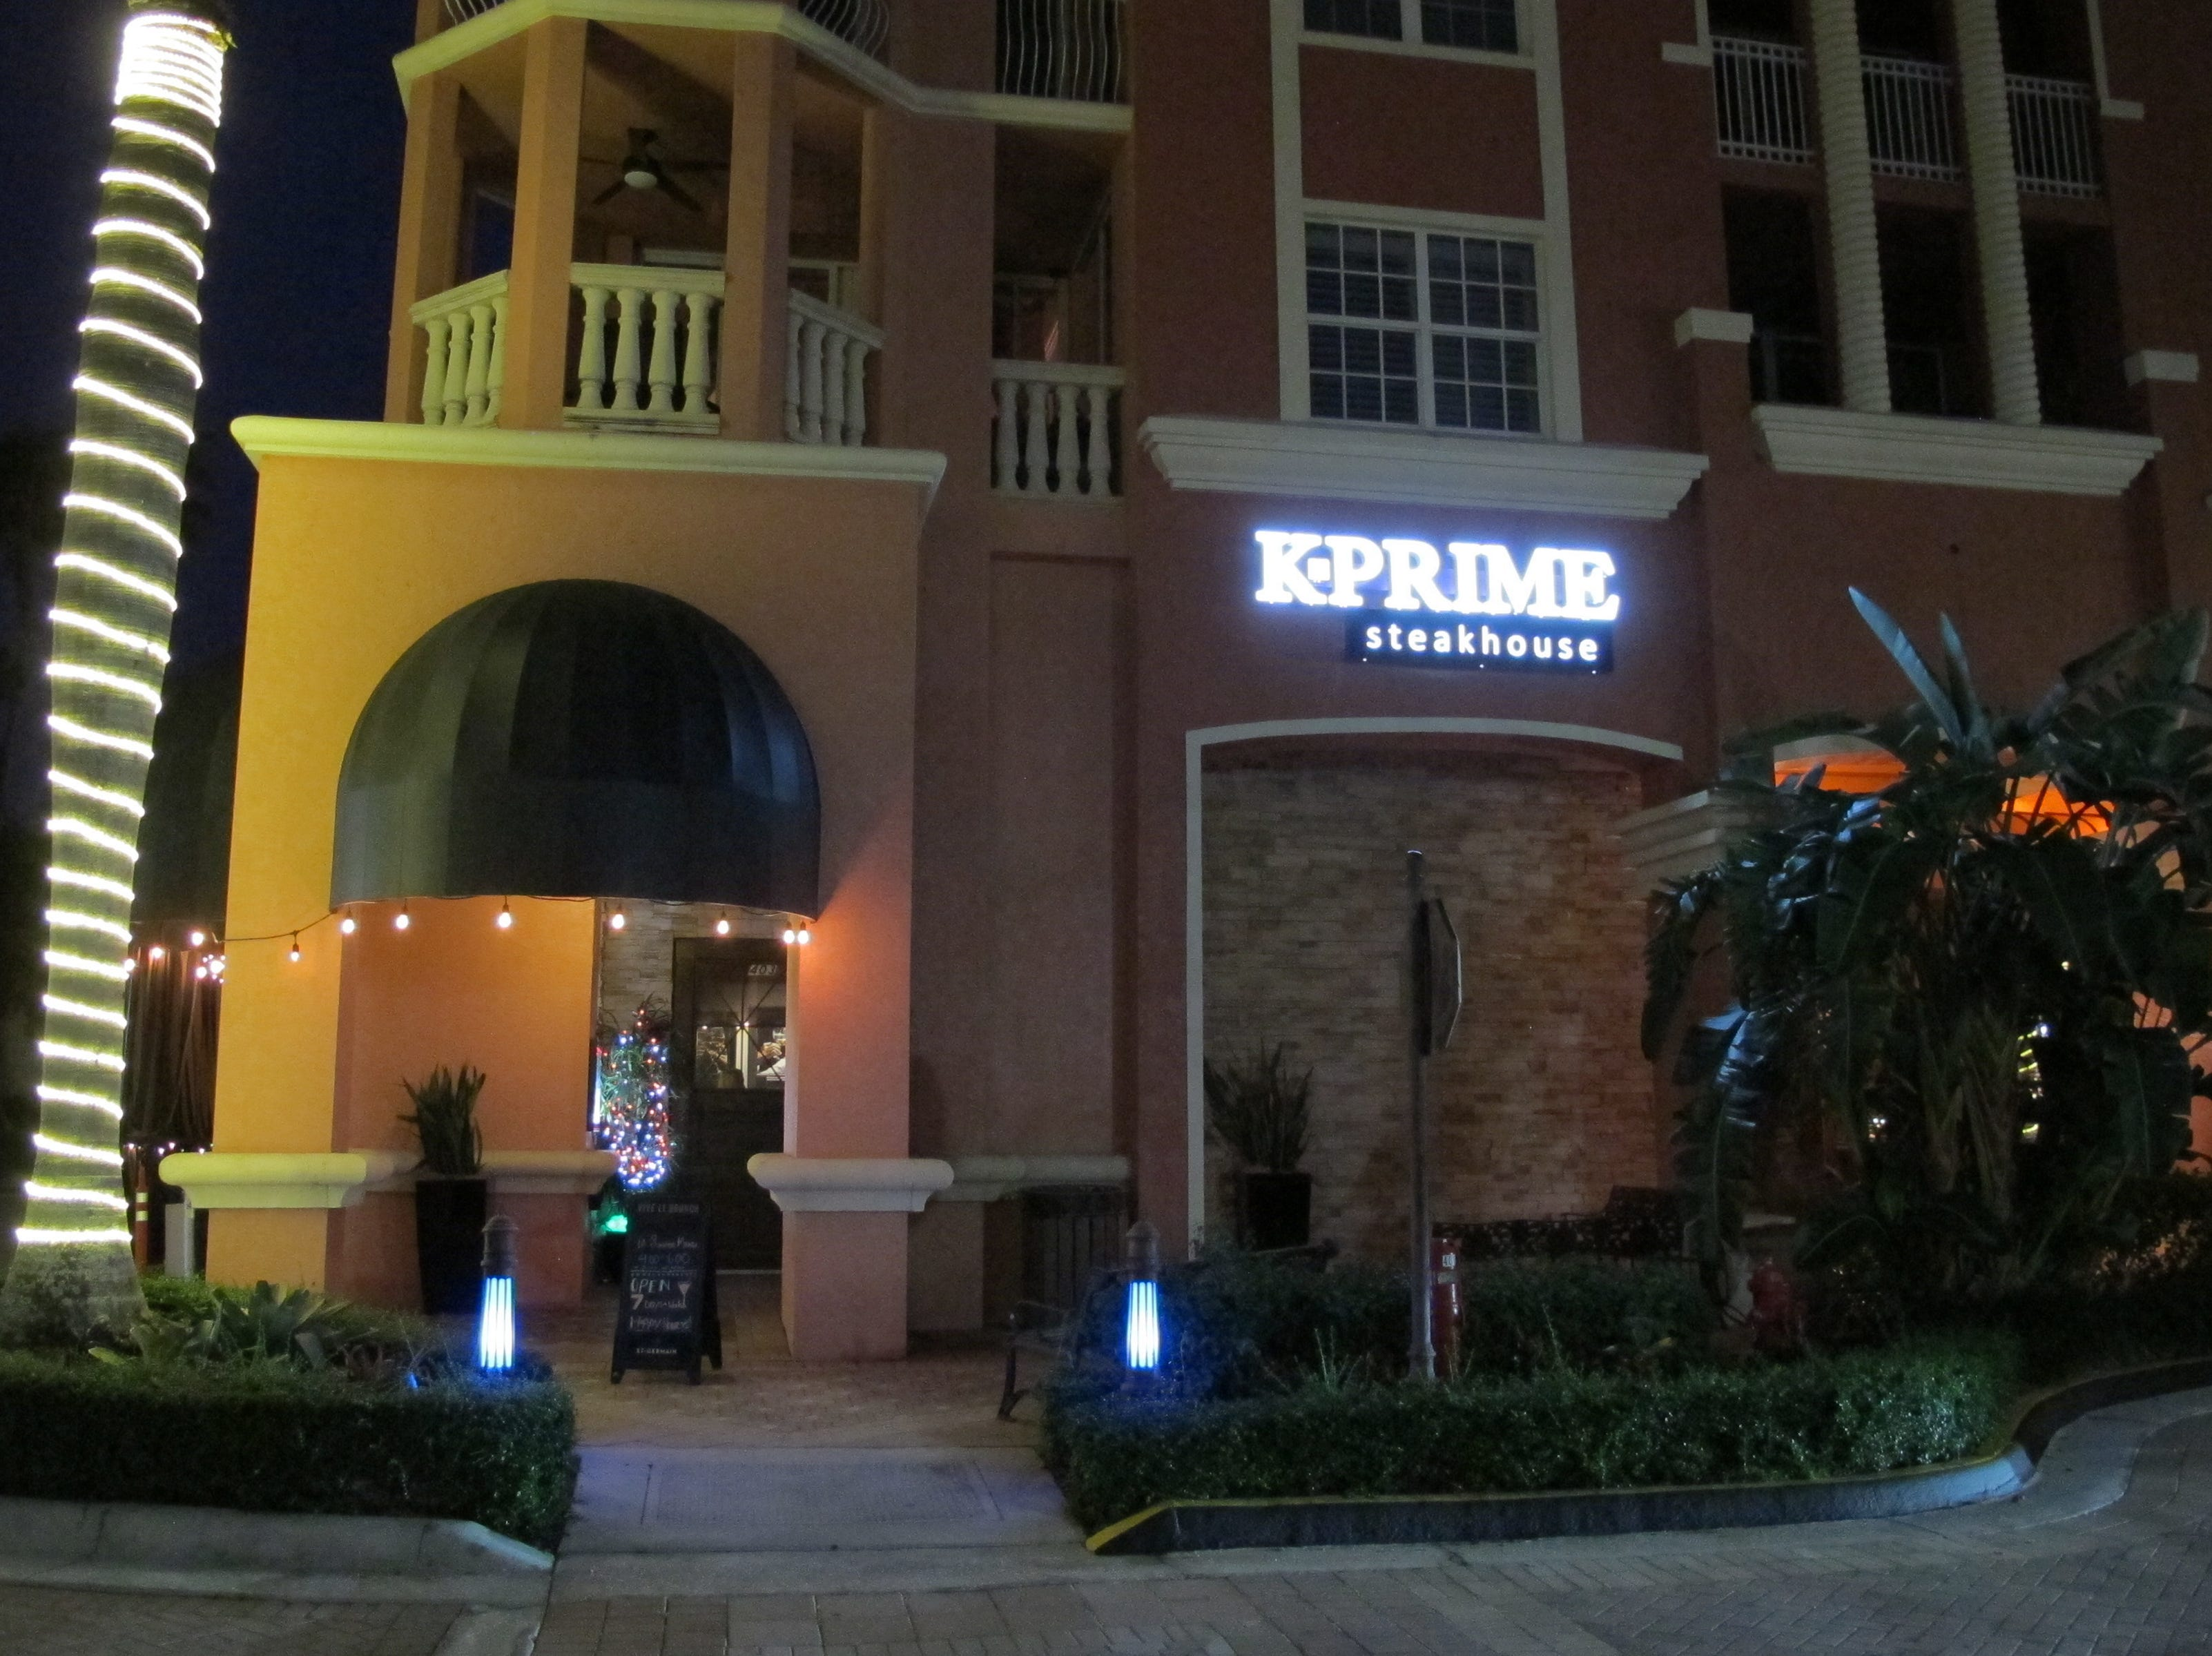 St. Germain Steakhouse in Bayfront became K-Prime Steakhouse in October 2018 after Kevin Stoneburner rekindled the ownership of a Naples business he originally operated for years as Stoney's Steakhouse.